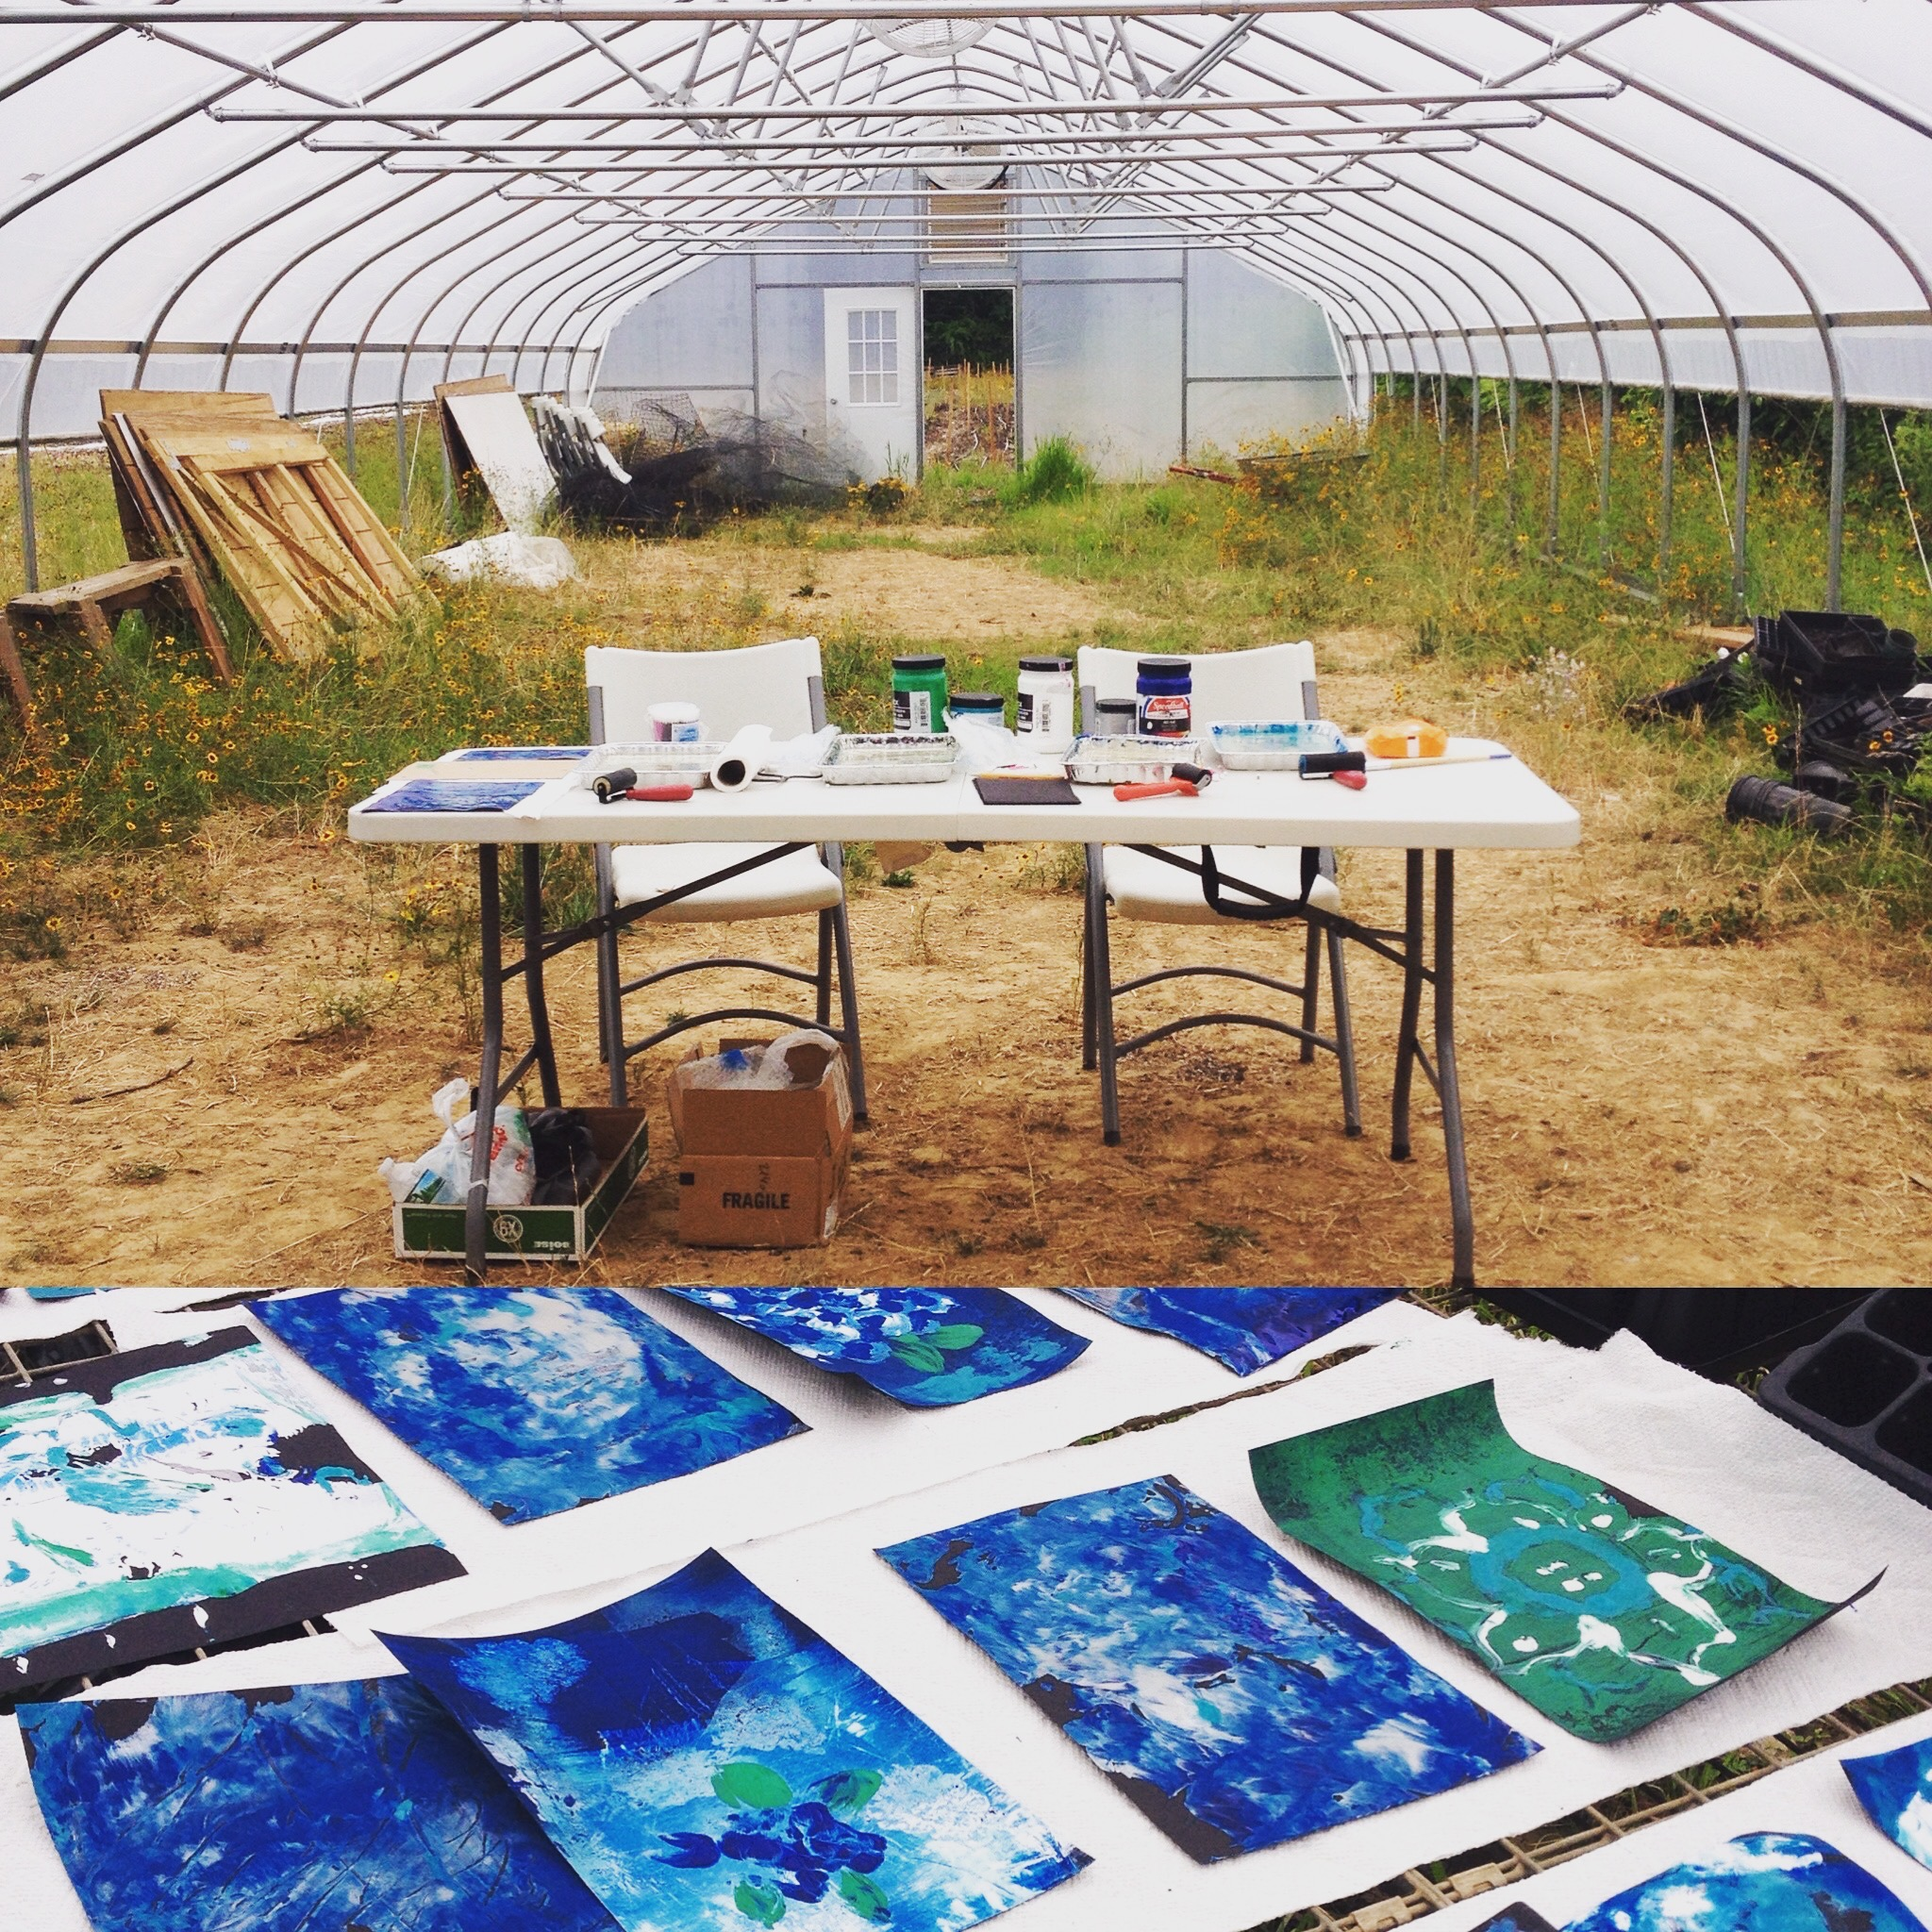 Mono-print Workshop at Capital City Farm in Trenton, NJ.